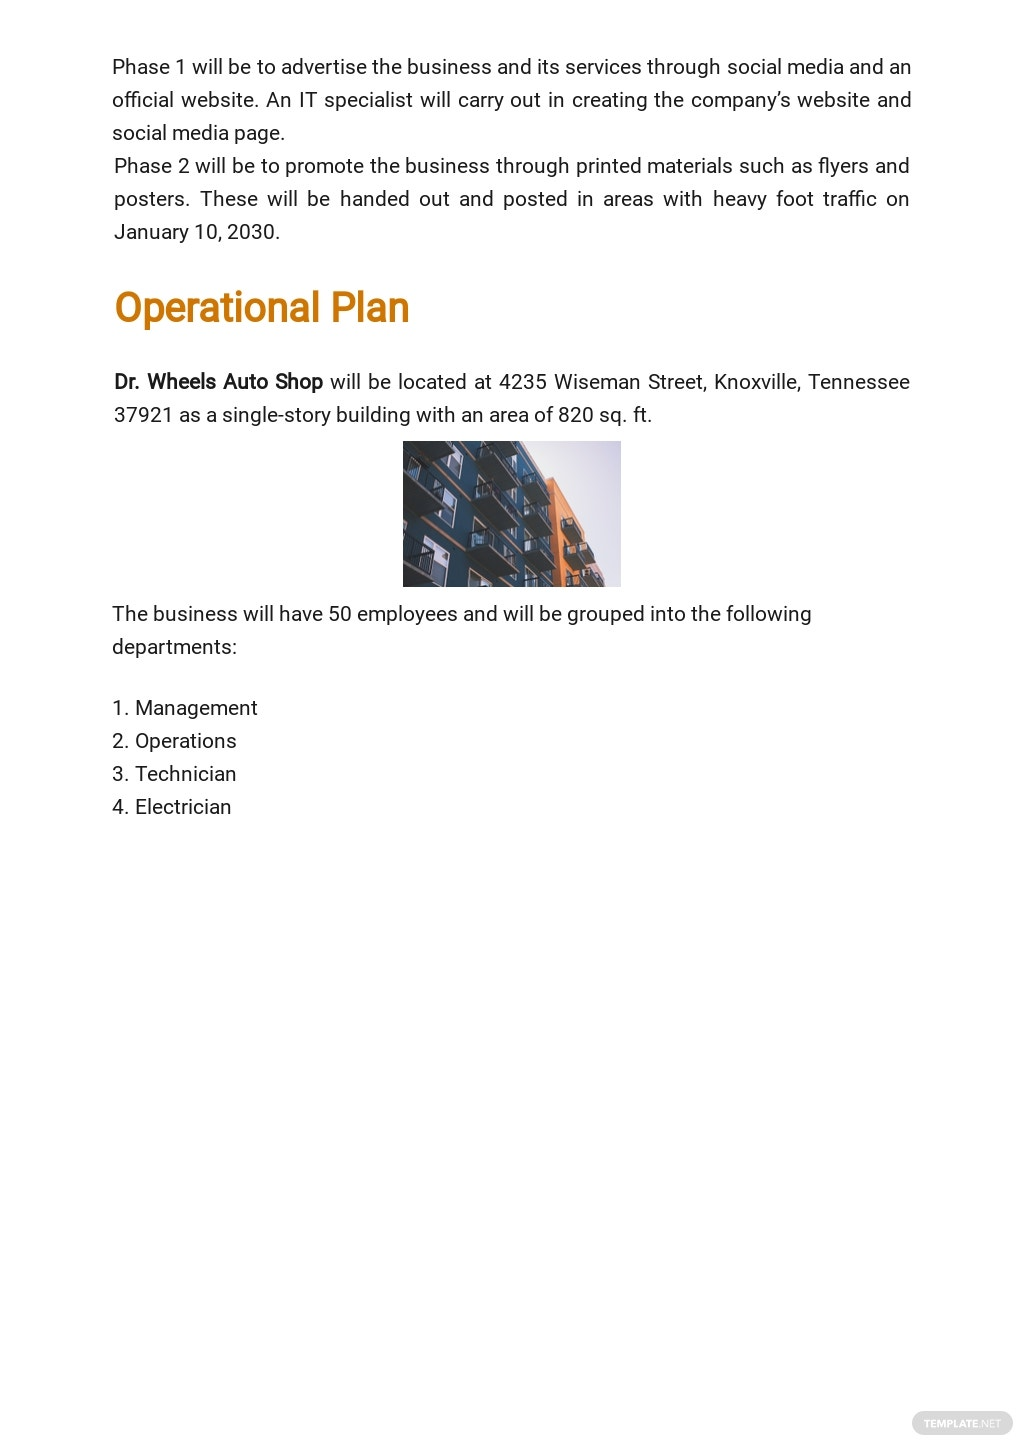 Auto Repair Service Business Plan Template 4.jpe